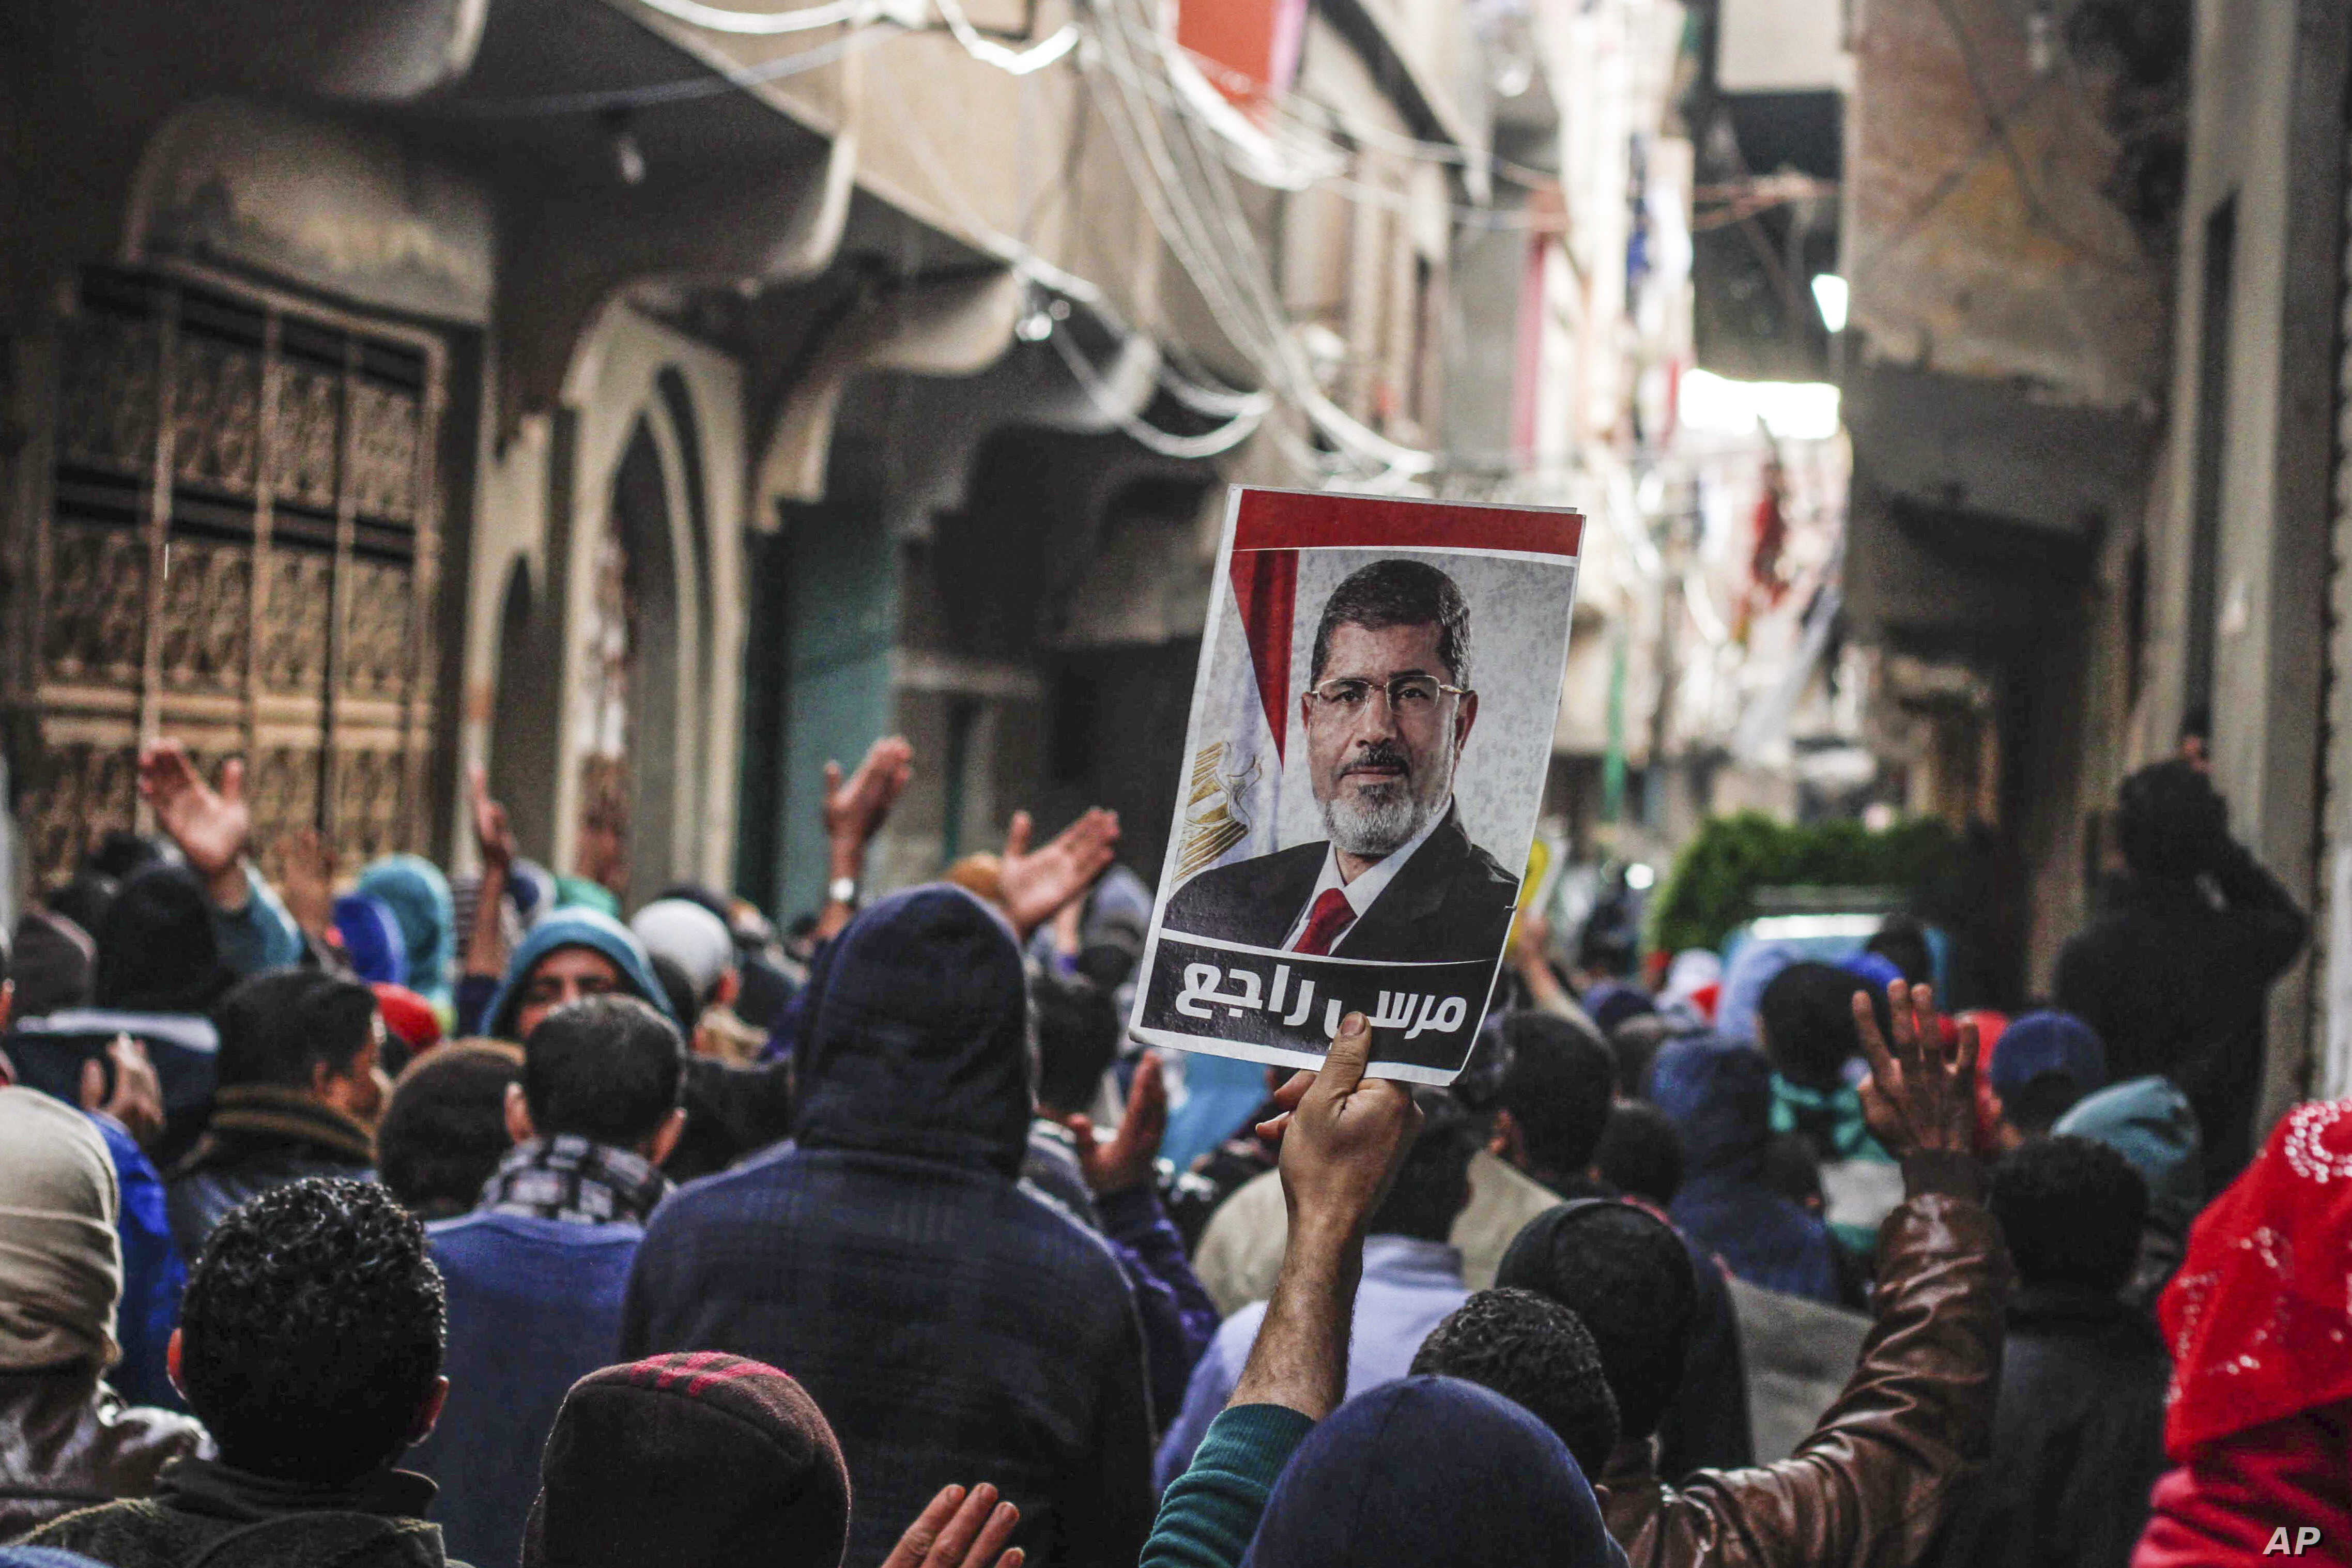 FILE - supporters of ousted Islamist President Mohamed Morsi, chant slogans and raise an image of him after the Muslim Brotherhood called on its supporters to take to the streets on the anniversary of the 2011 uprising, in Cairo, Egypt.